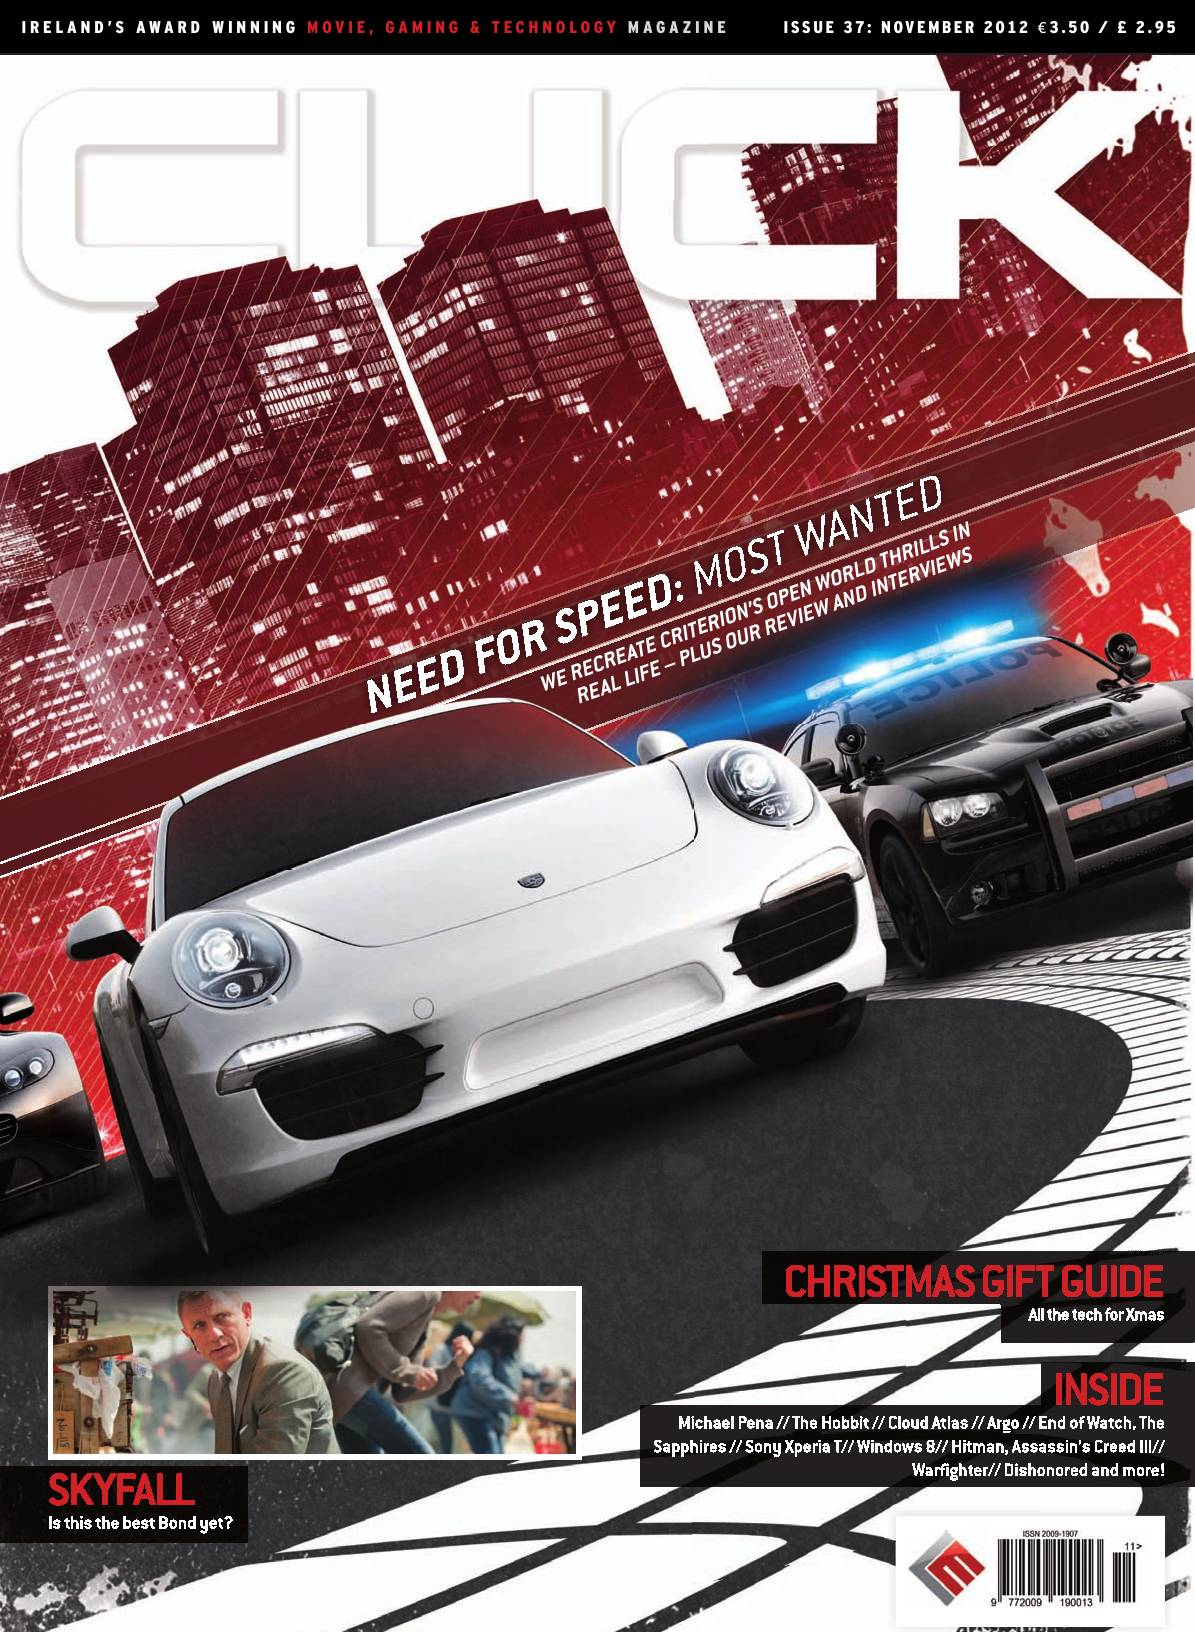 Click Issue 37 Nov 2012